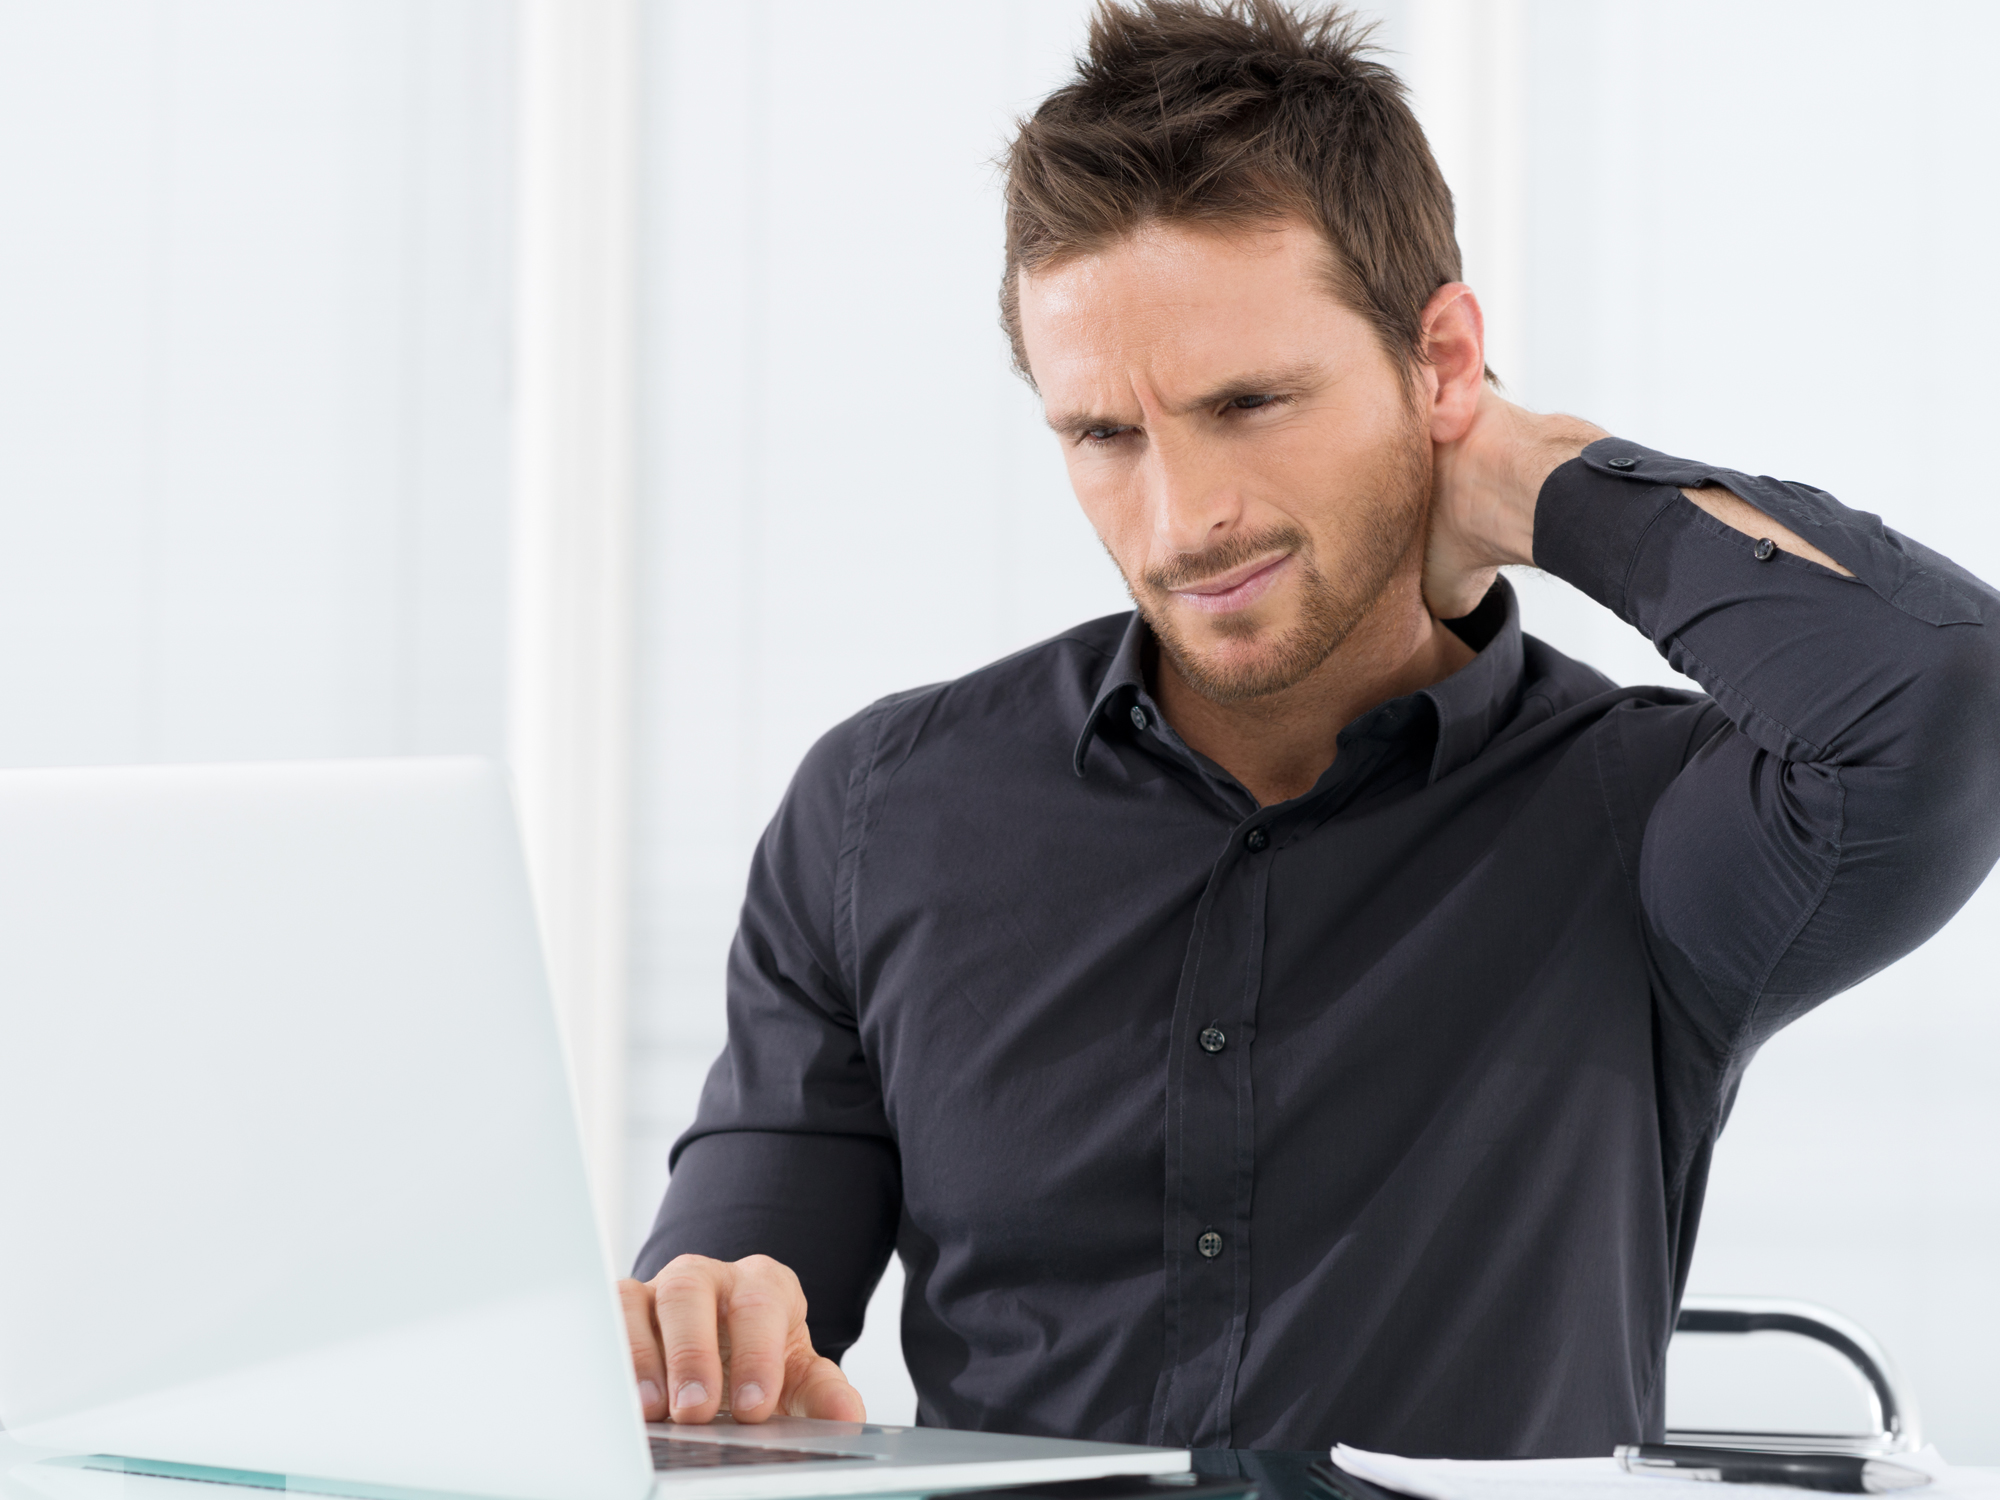 The easy way to get rid of a pain in the neck